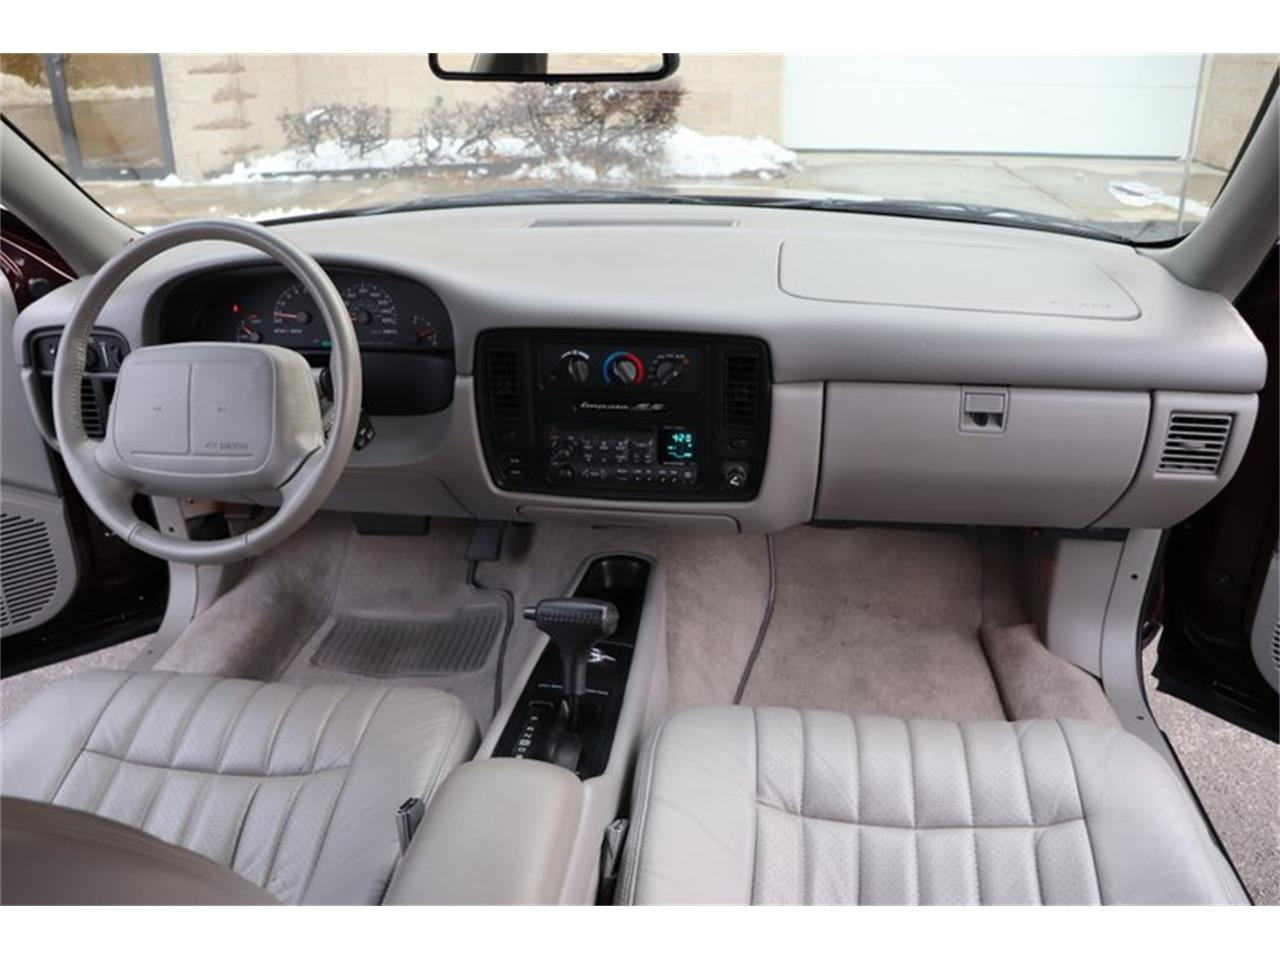 Large Picture of '96 Impala located in Illinois - $28,900.00 - P1PX